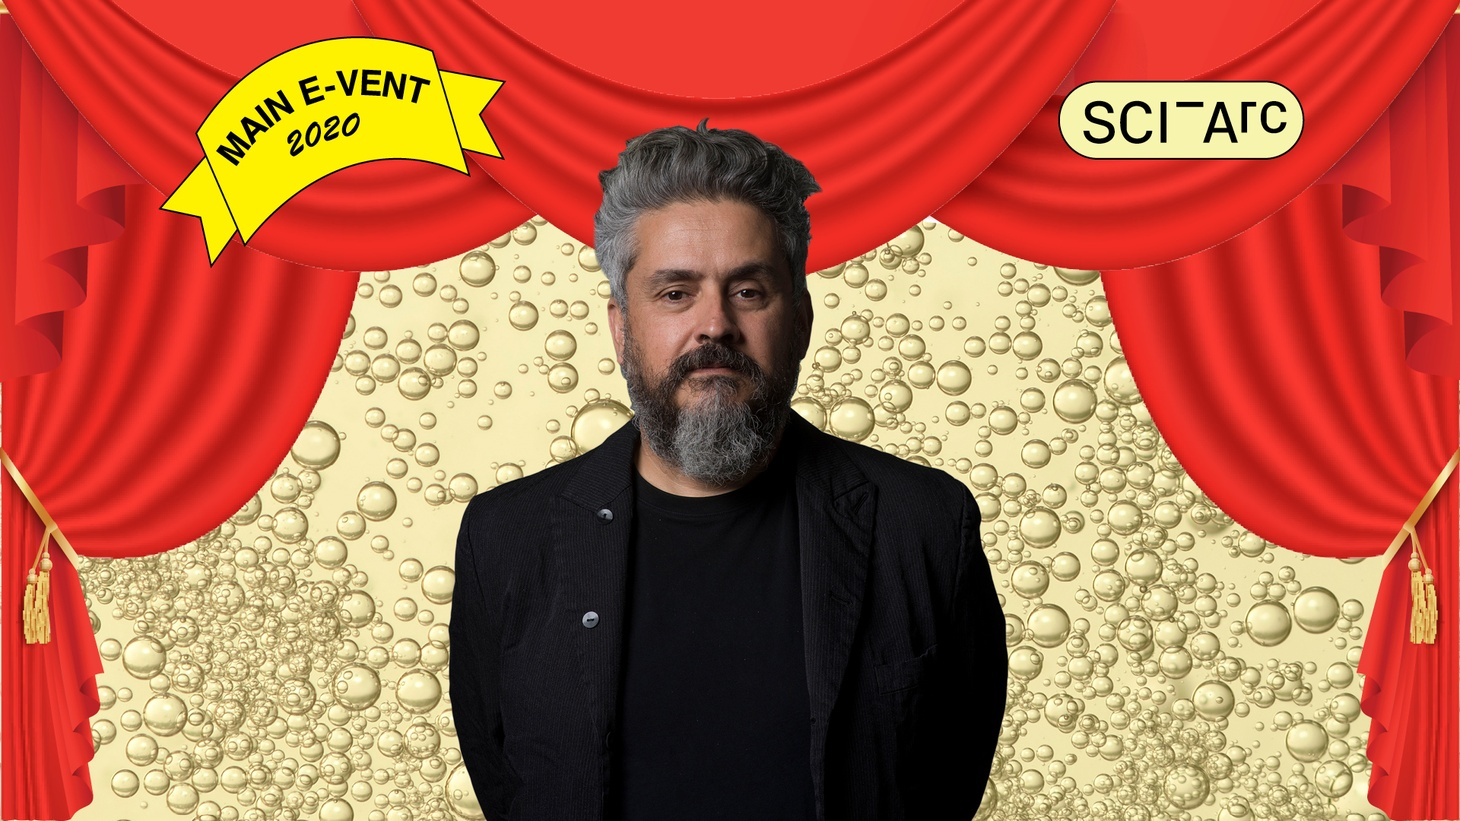 SCI-Arc moves its annual fundraising Main Event online and it's now an E-Vent, taking place Saturday, May 2. Shown, SCI-Arc Director Hernán Díaz Alonso.